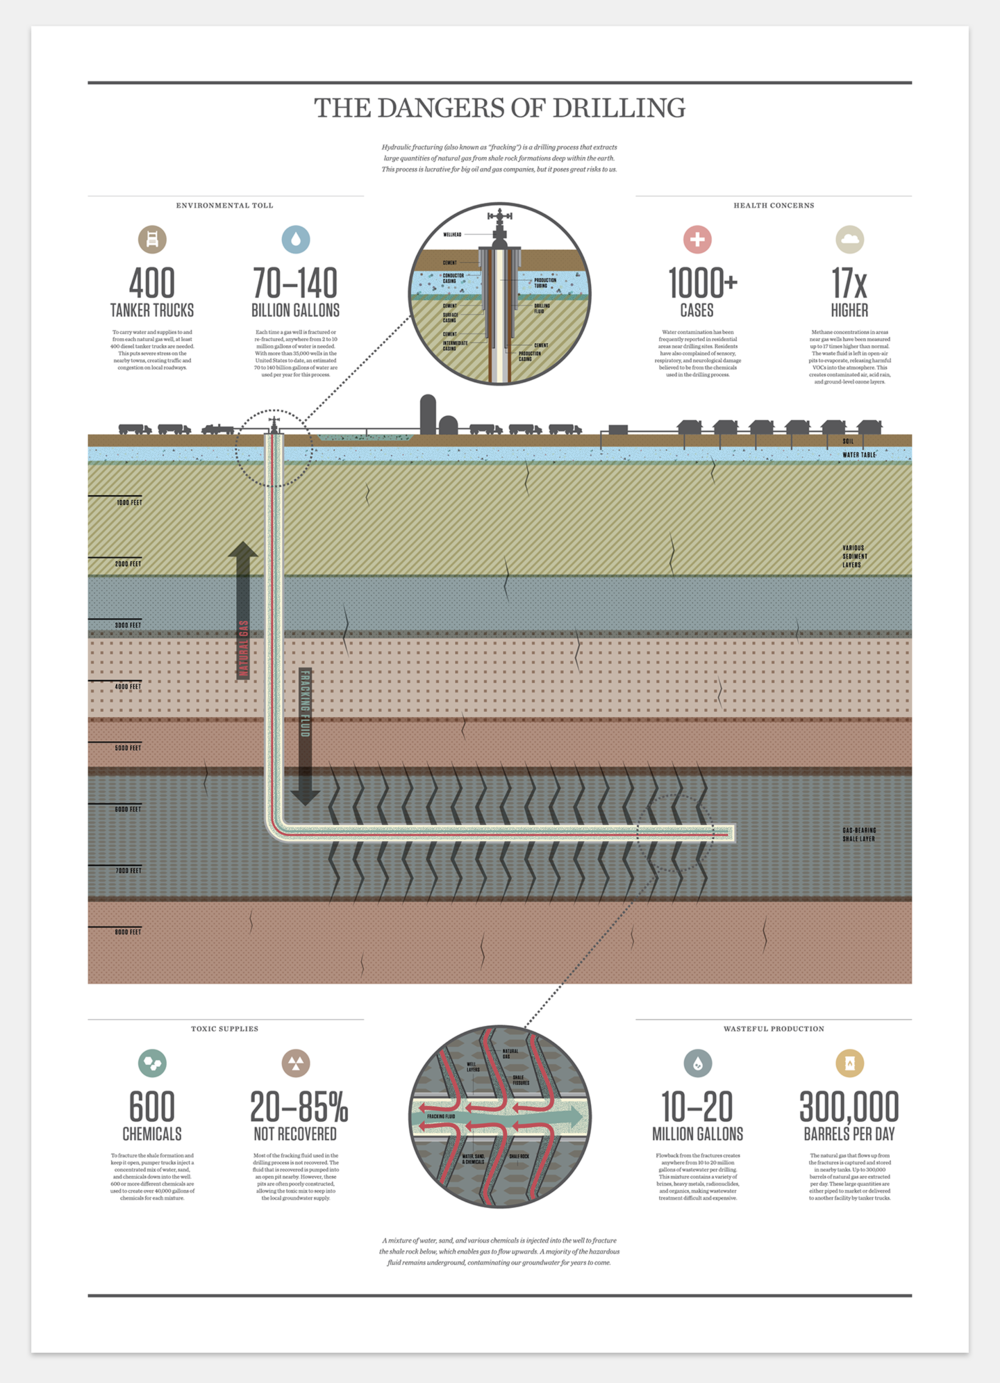 This diagram breaks down the hydraulic fracturing process, warning the public about the dangers it presents to the water supply.